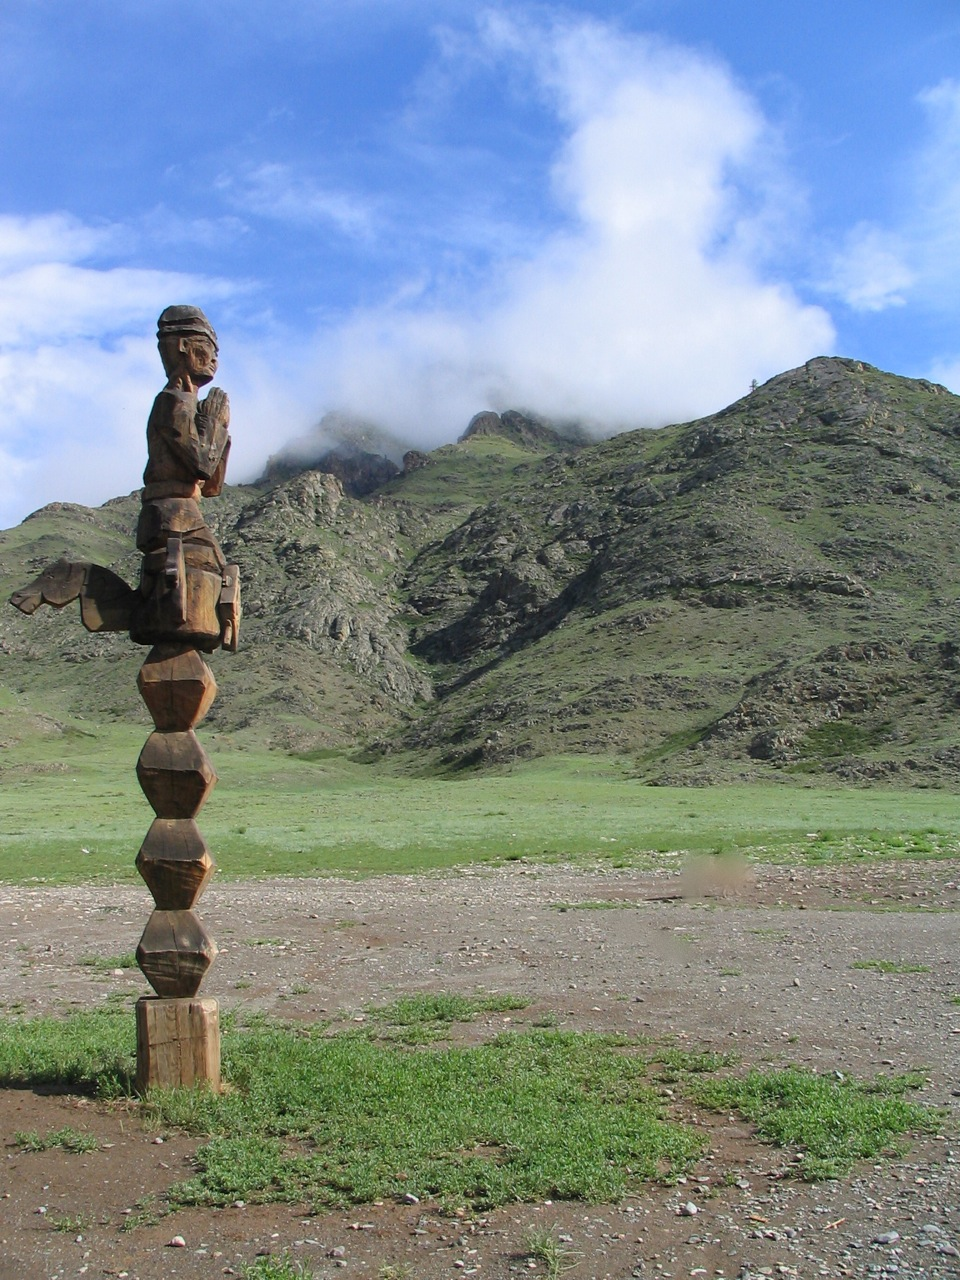 Traditional hitching post at Chui Oozy. Photo: Jennifer Castner at The Altai Project